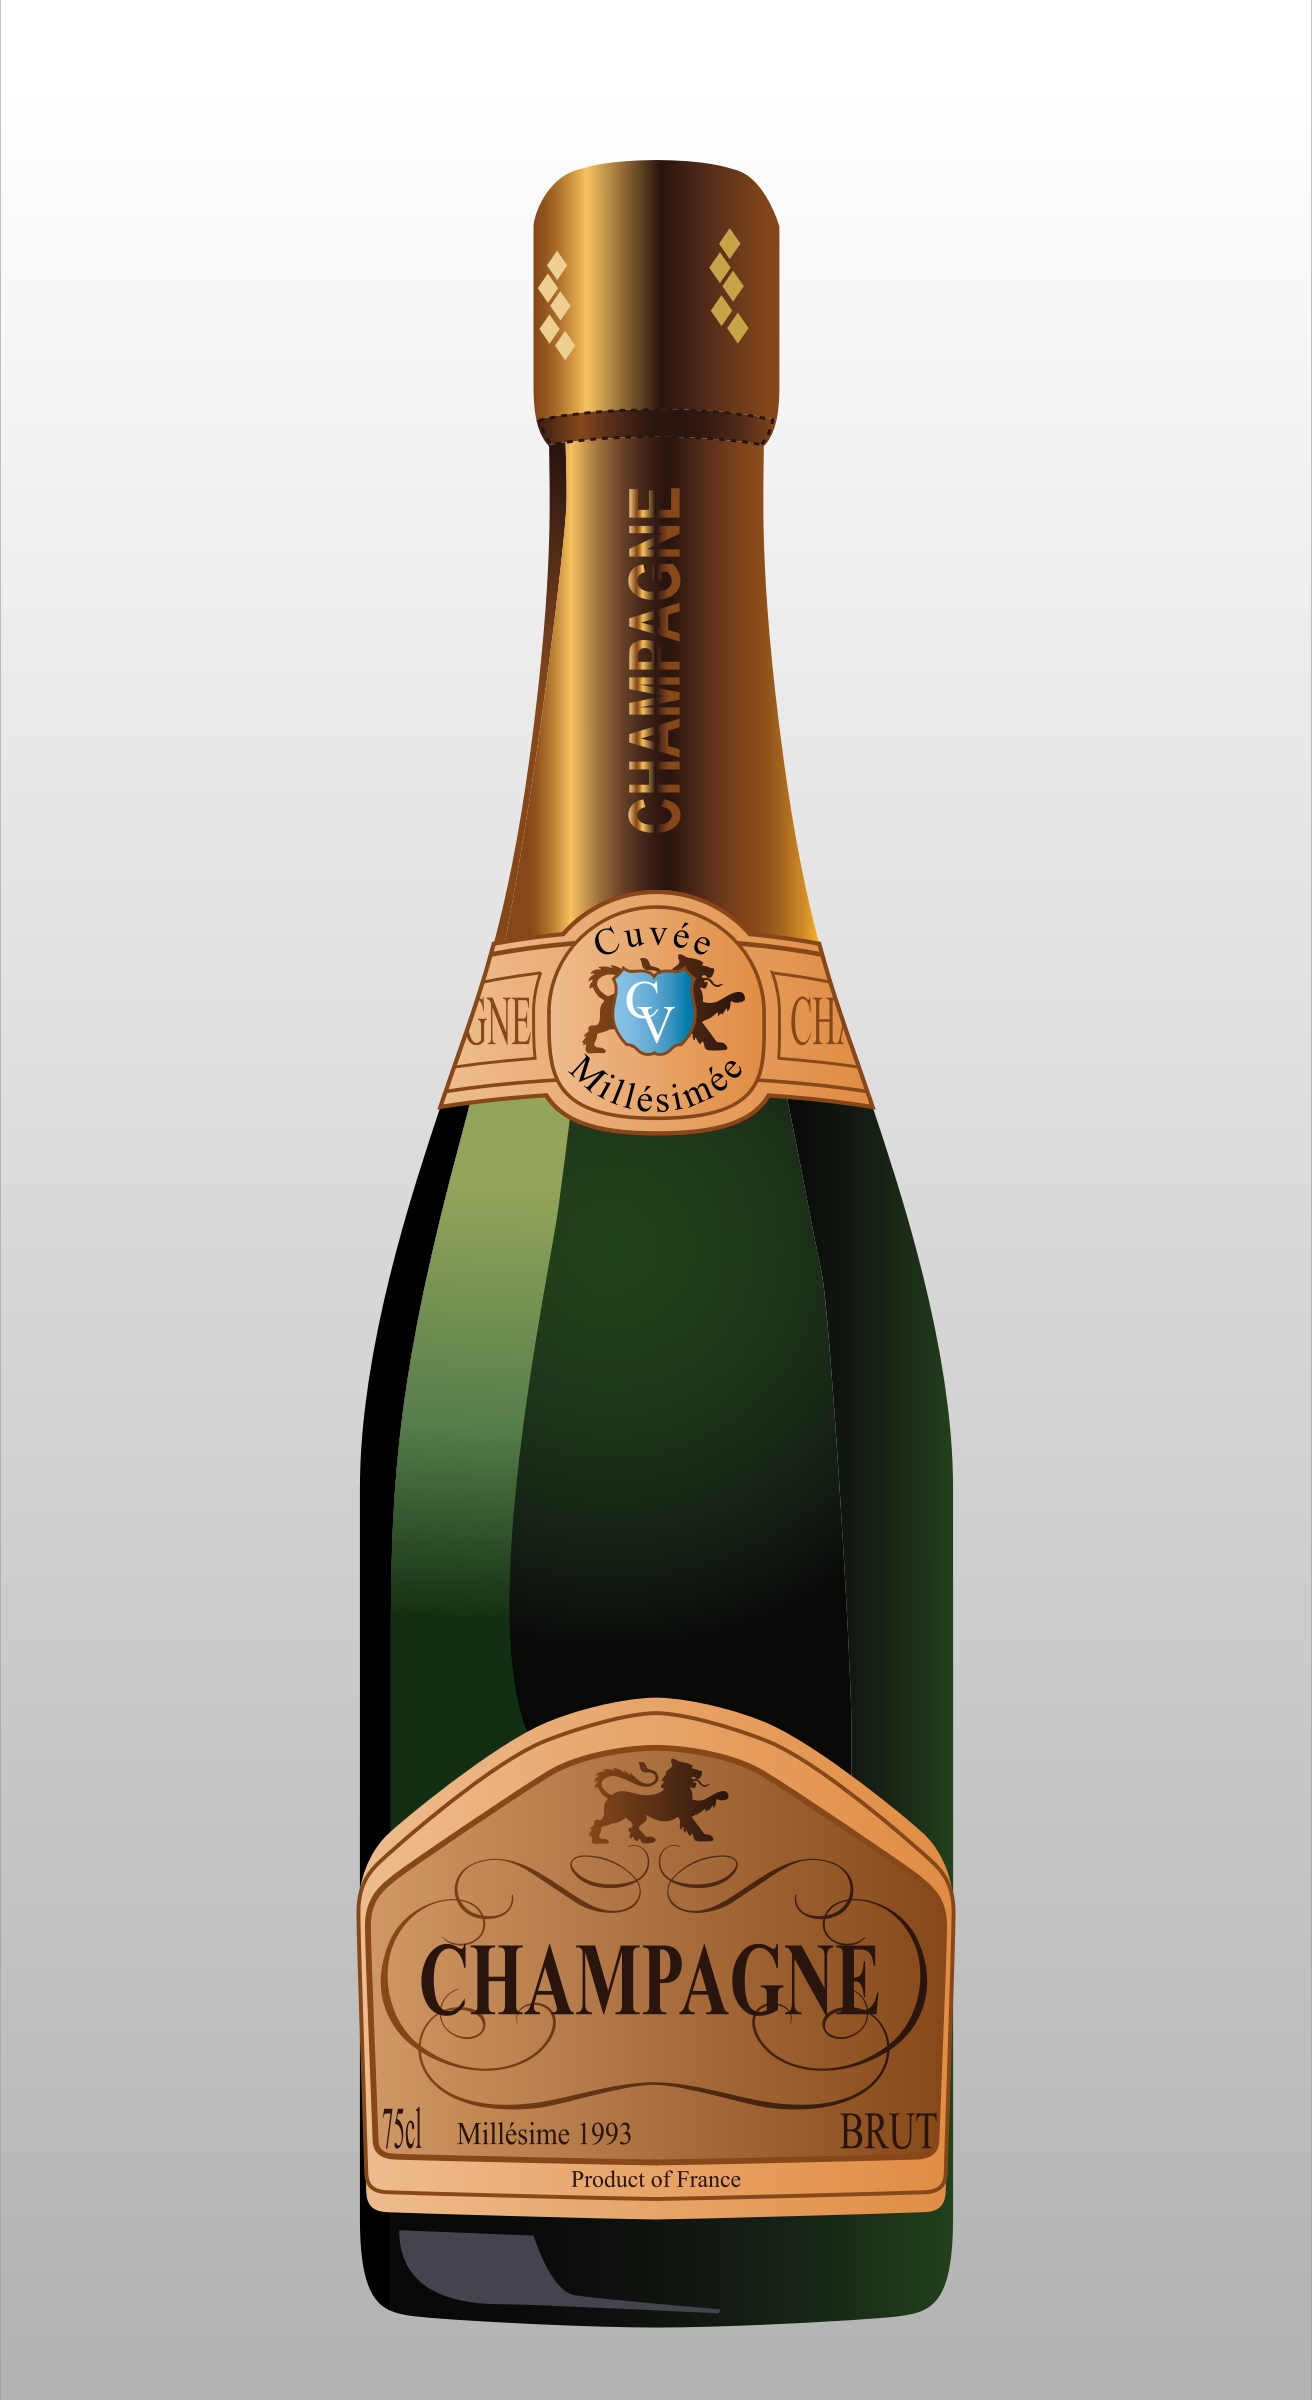 Champaign clipart alcohol. Bottle of champagne big